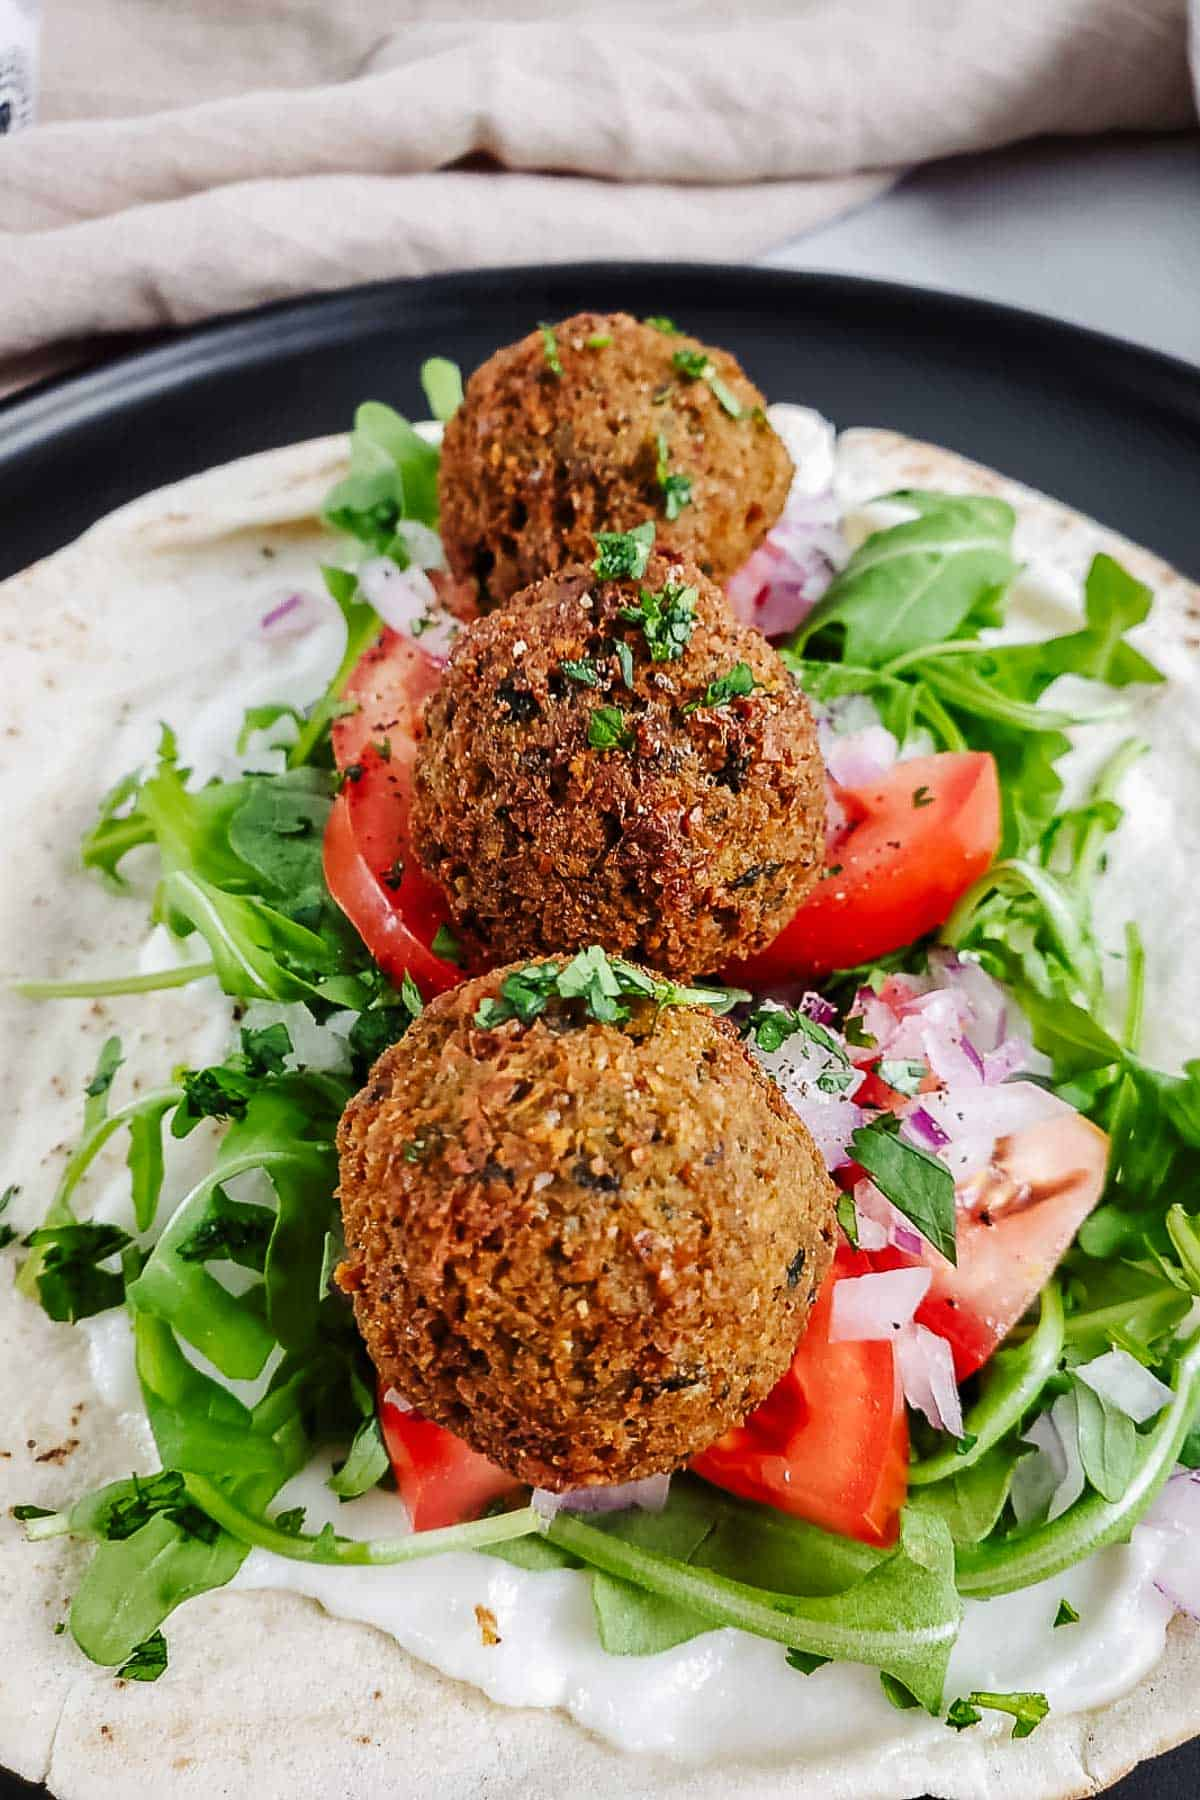 Authentic Homemade Falafel on Pita